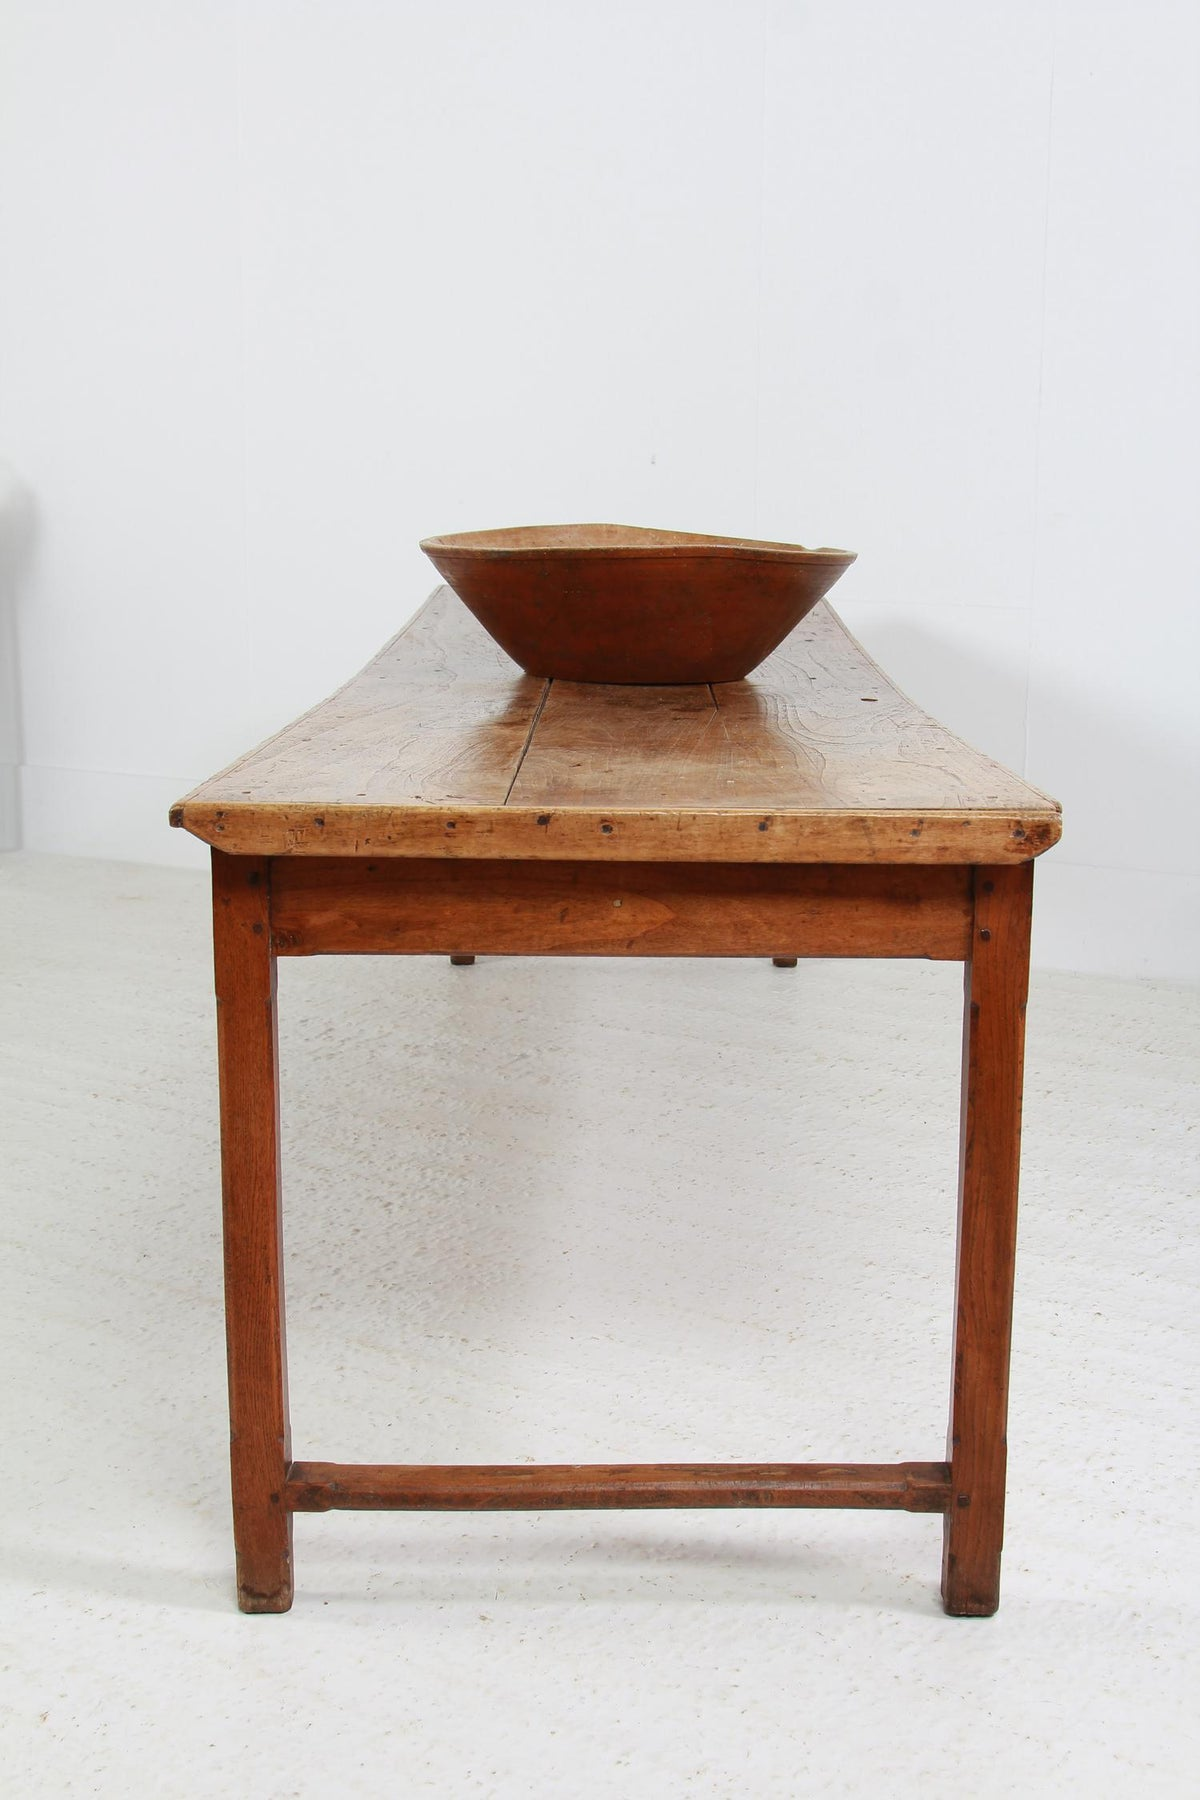 Handsome French 19thC Provincial Elm Server/Console